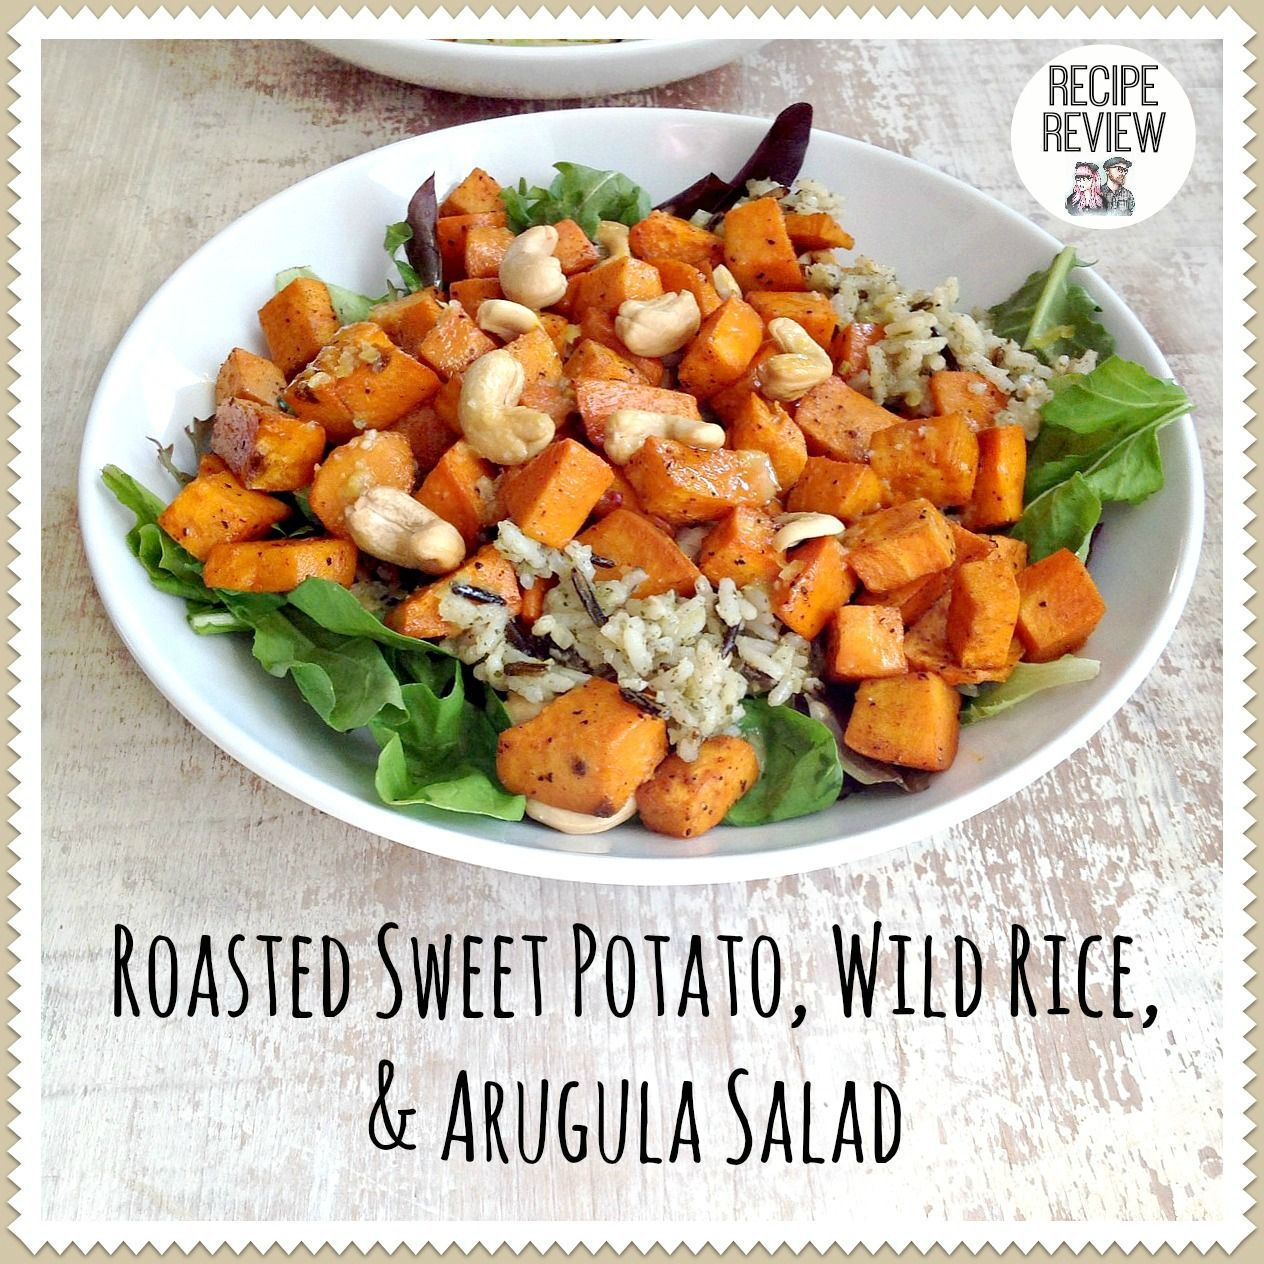 Everyday is a Holiday: Recipe Review: Roasted Sweet Potato, Wild Rice, and Arugula Salad ...spoiler... it is DELICIOUS! The lemon dressing is amazing!